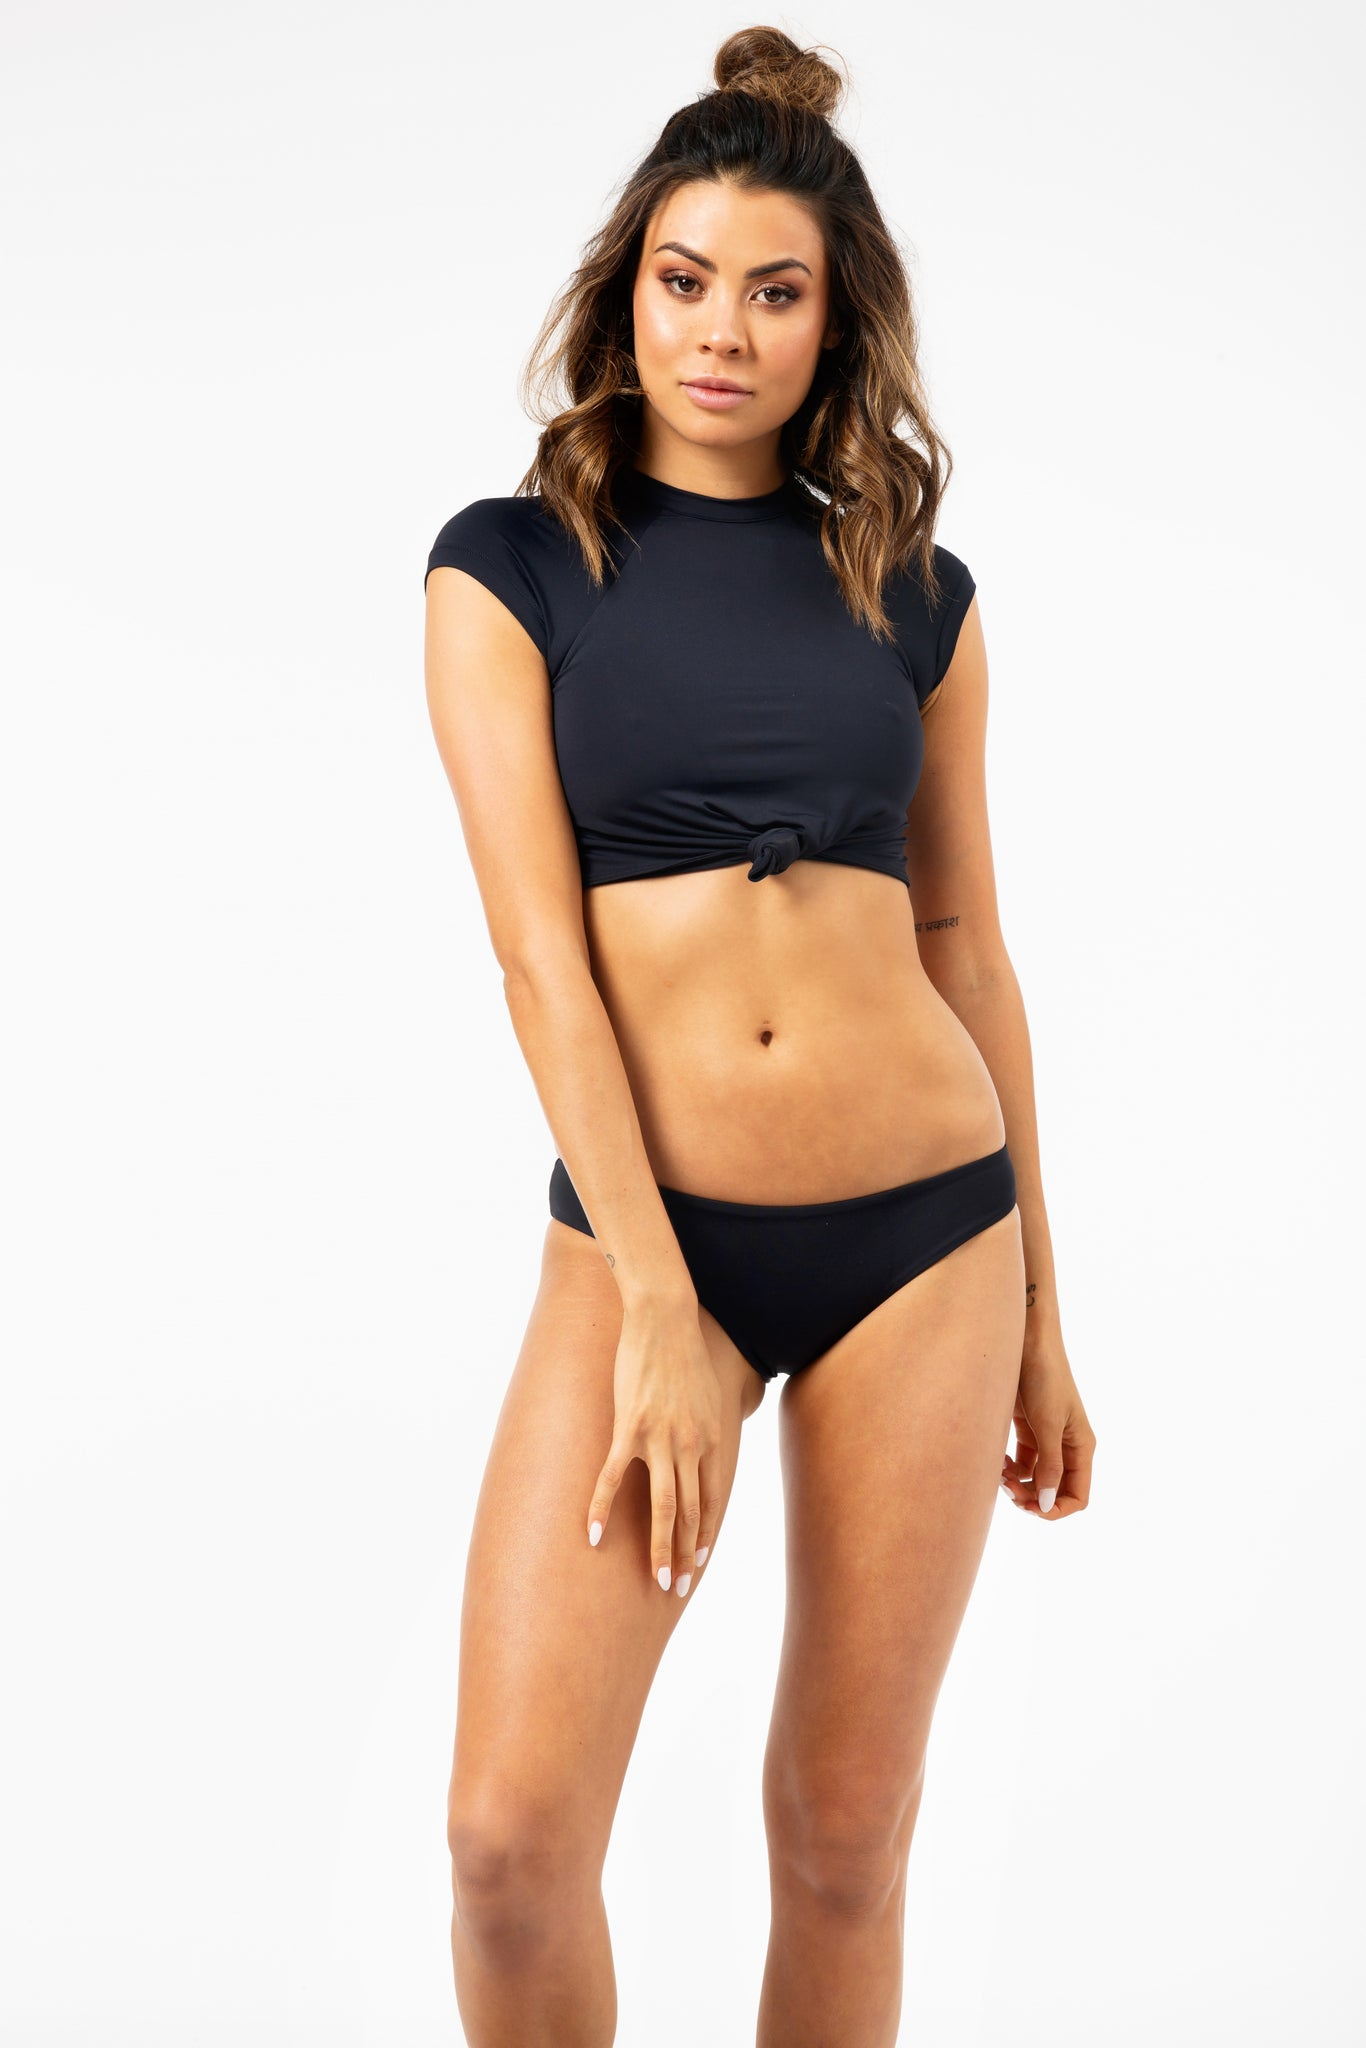 ALL THE FEELS: Max Top in Black - FRANKIES BIKINIS